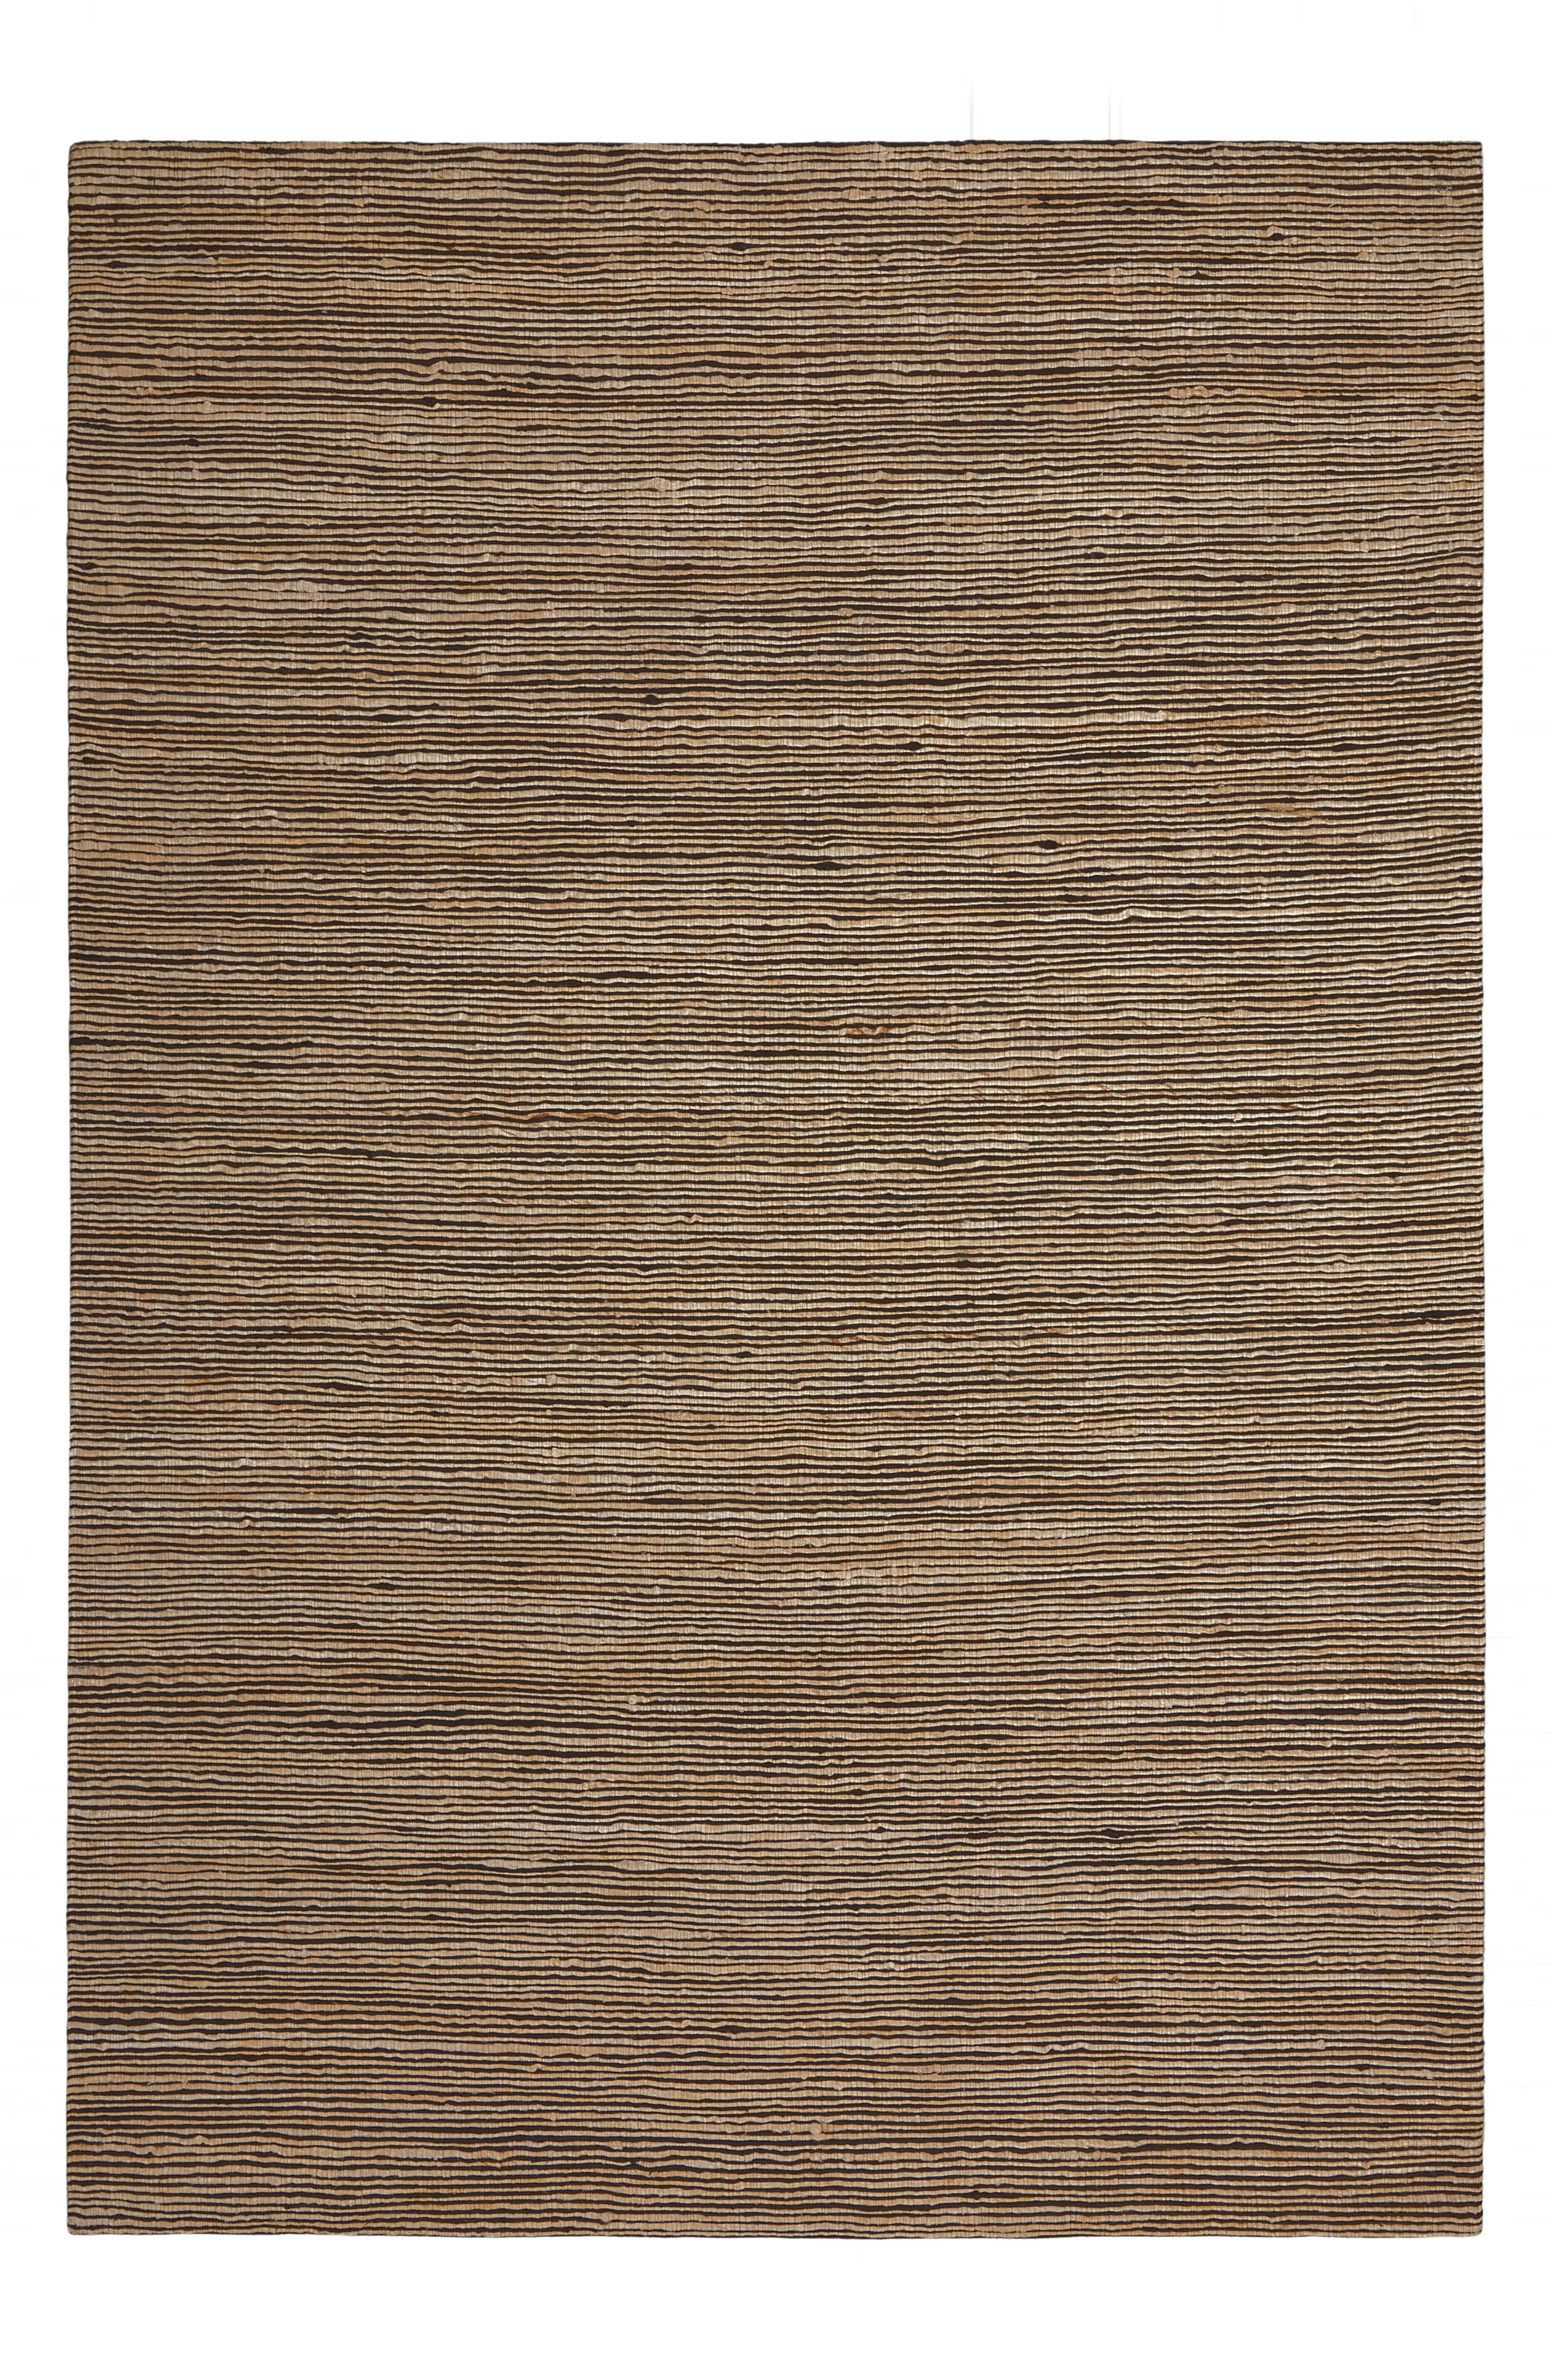 Monsoon Handwoven Area Rug,                         Main,                         color, 020